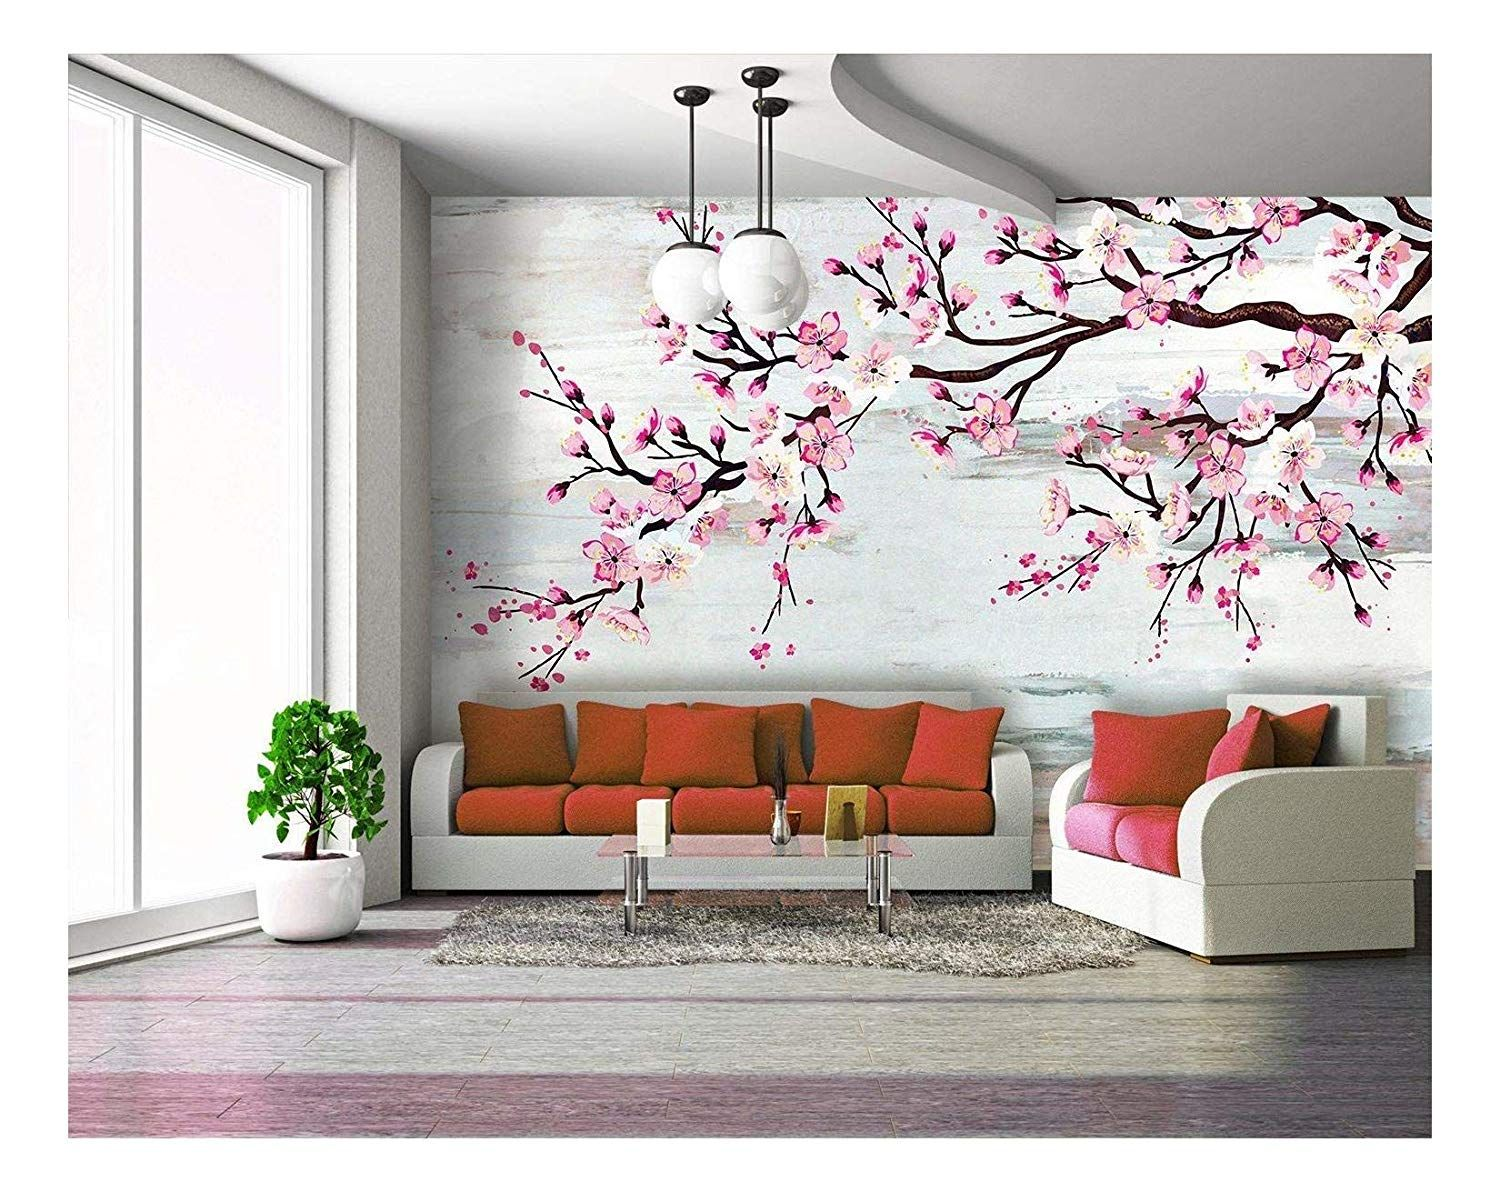 Large Wall Mural Watercolor Style Ink Painting Pink Cherry Blossom On Abstract Background Vinyl Wallpaper Removable Wall Decor In 2021 Large Wall Murals Bedroom Wall Designs Wall Murals